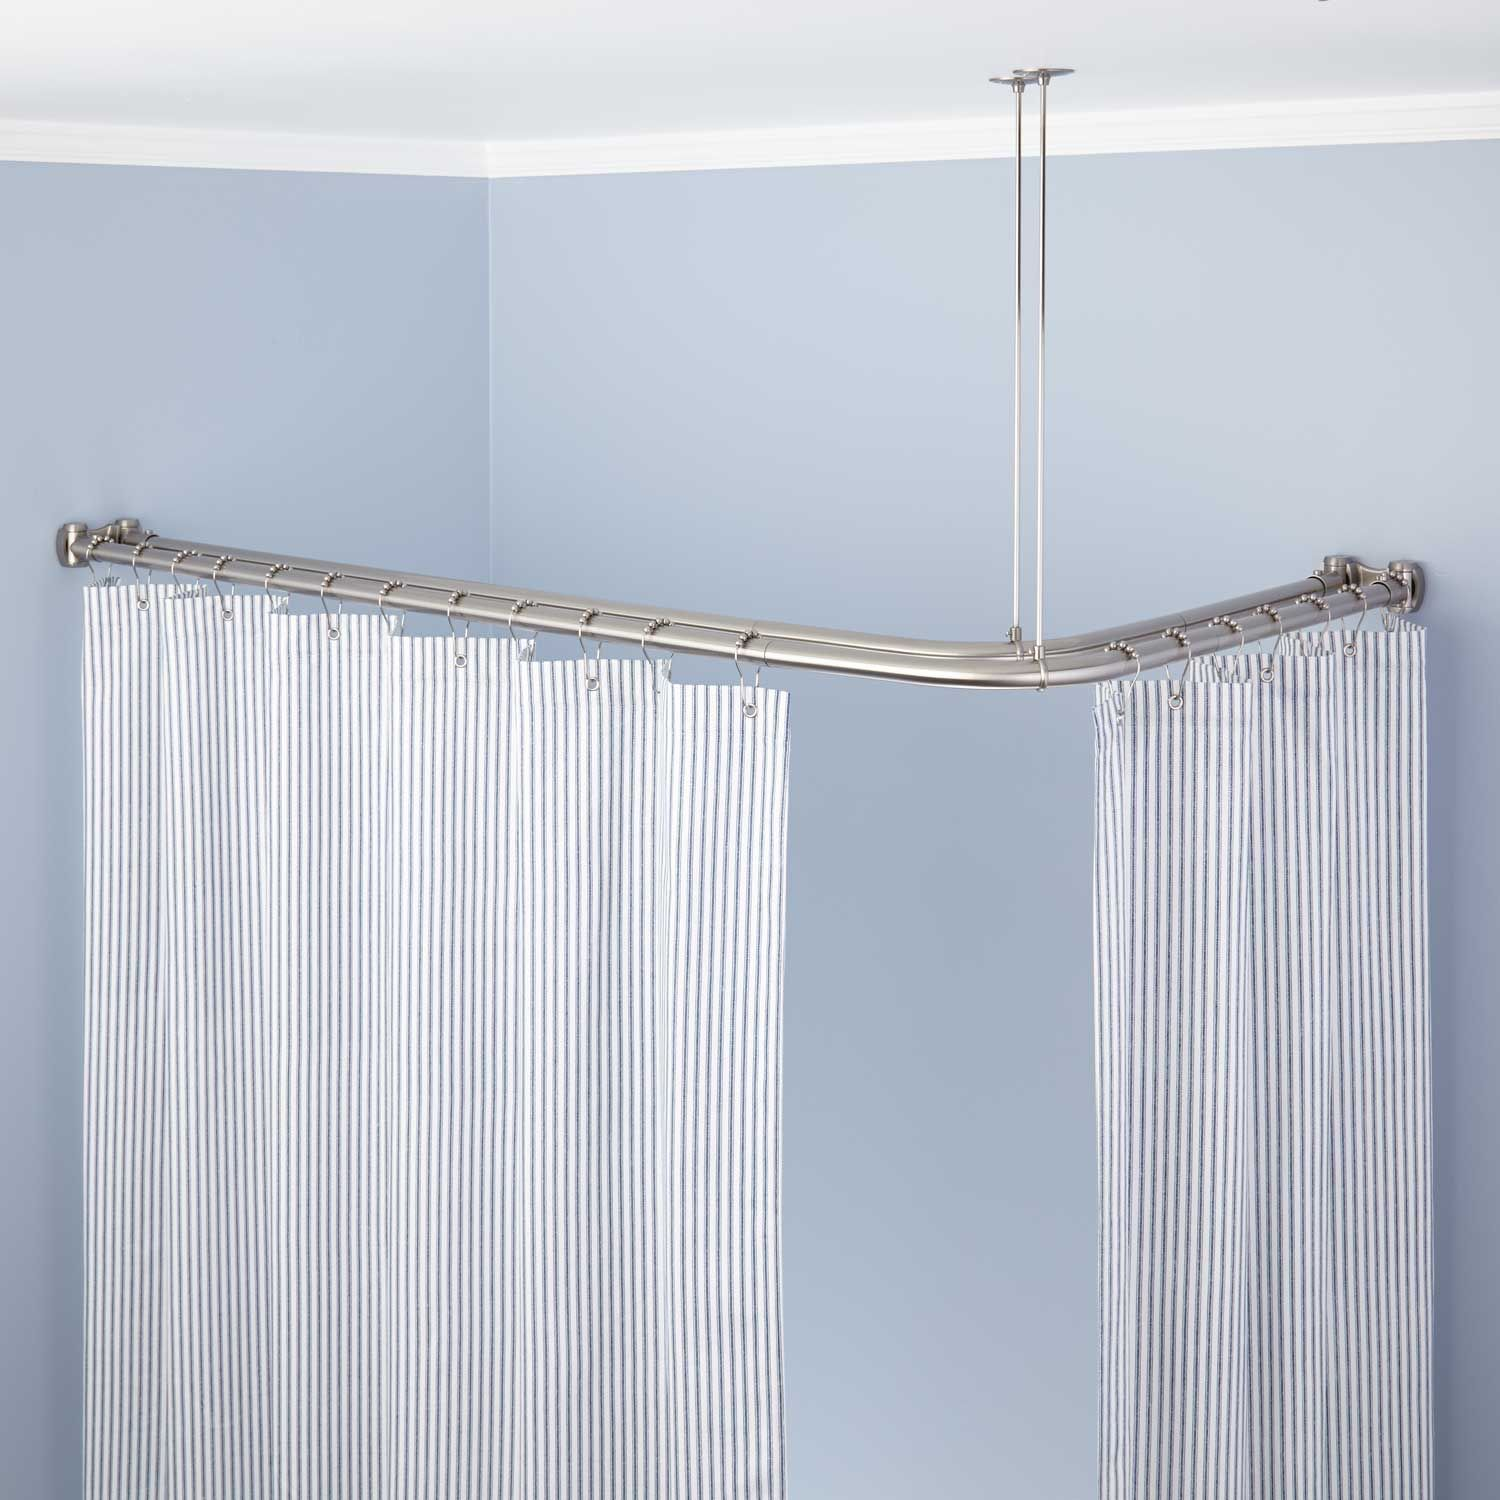 L Shaped Window Curtain Rod Neo Angle Solid Br Shower And Ceiling Support Rods Bathroom